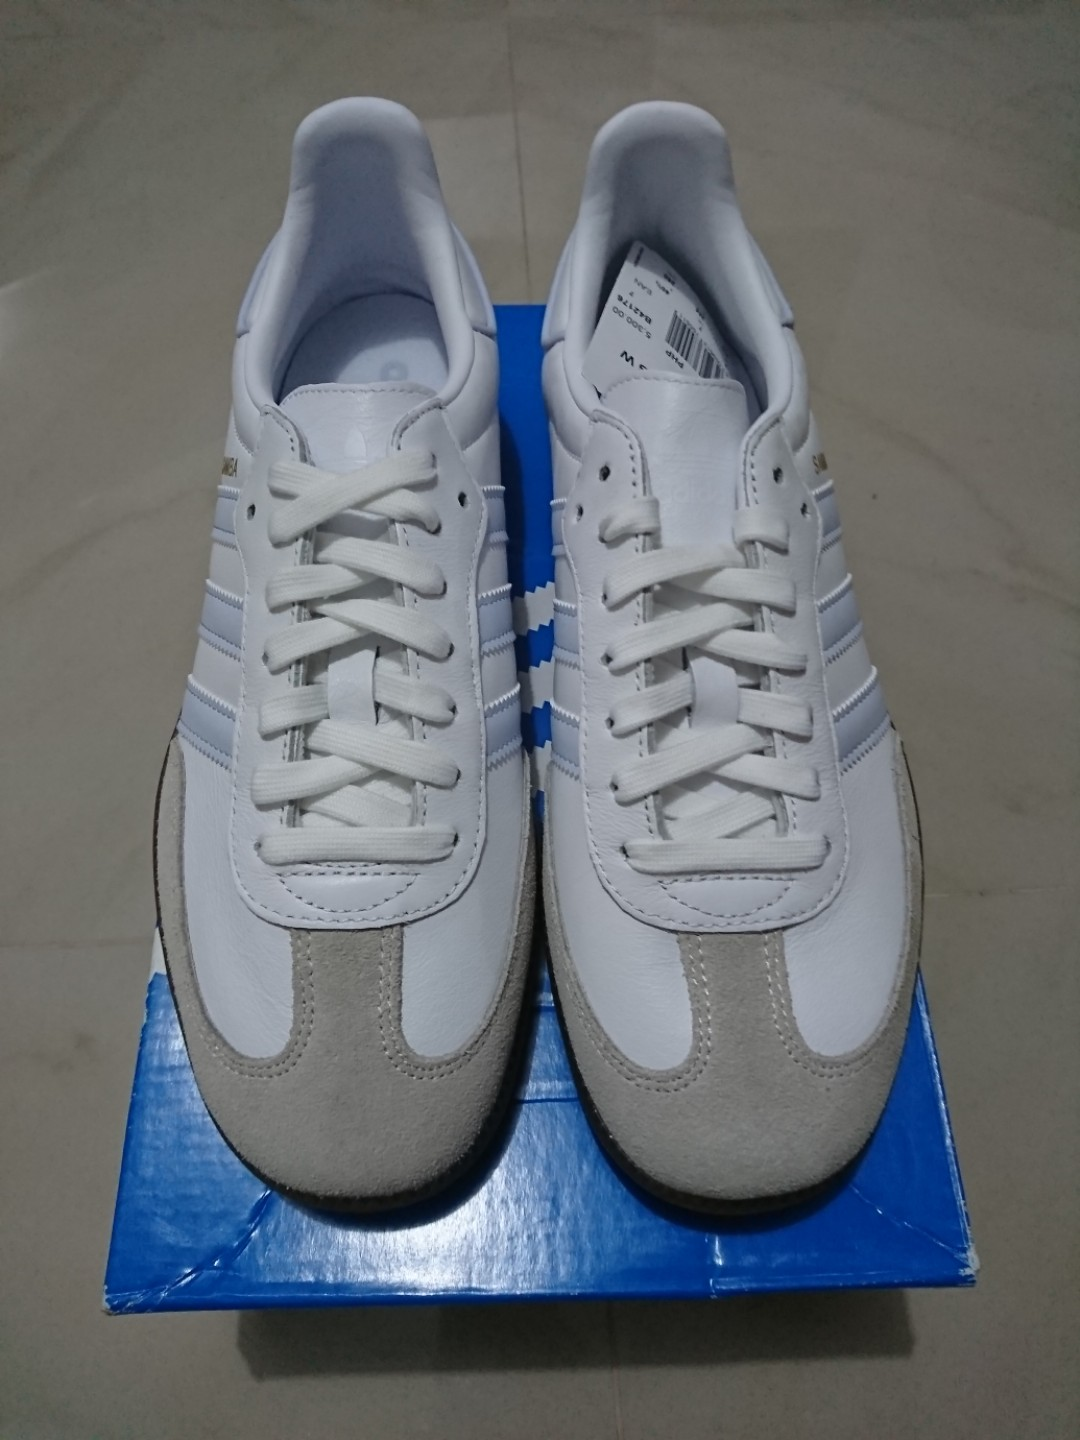 separation shoes a410c 4884c Adidas Originals Samba OG, Women s Fashion, Shoes on Carousell